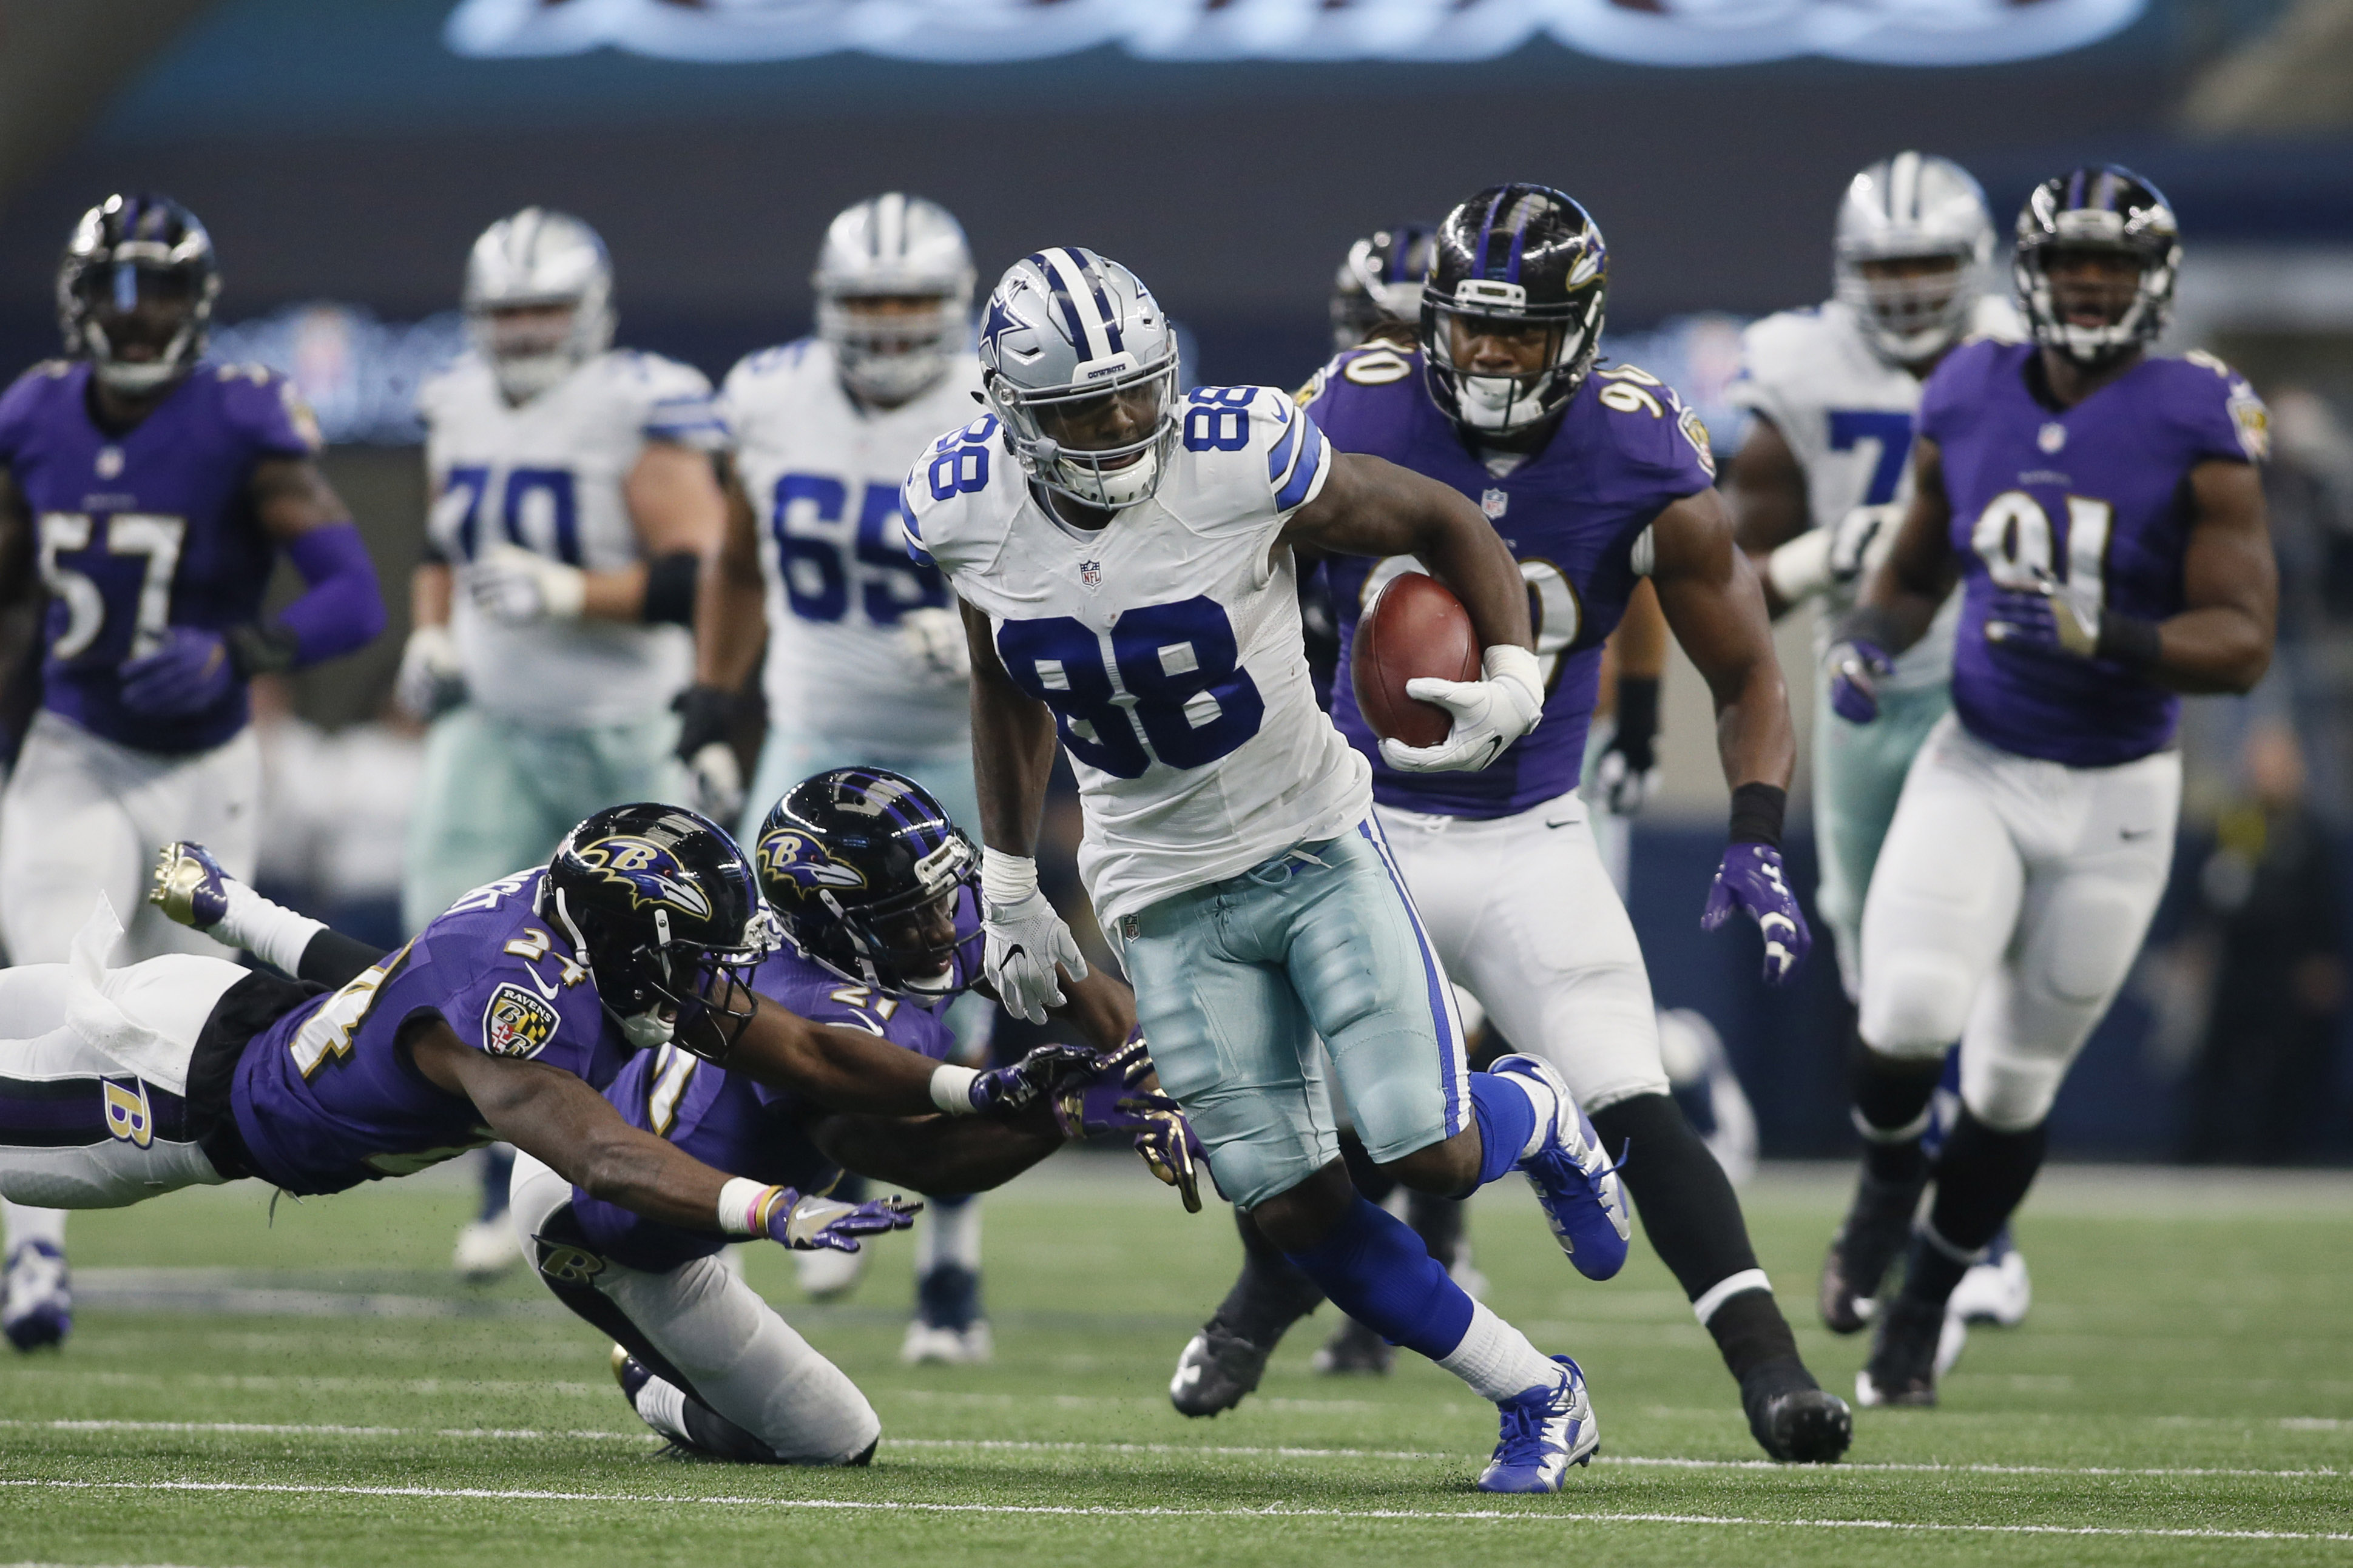 9693315-nfl-baltimore-ravens-at-dallas-cowboys